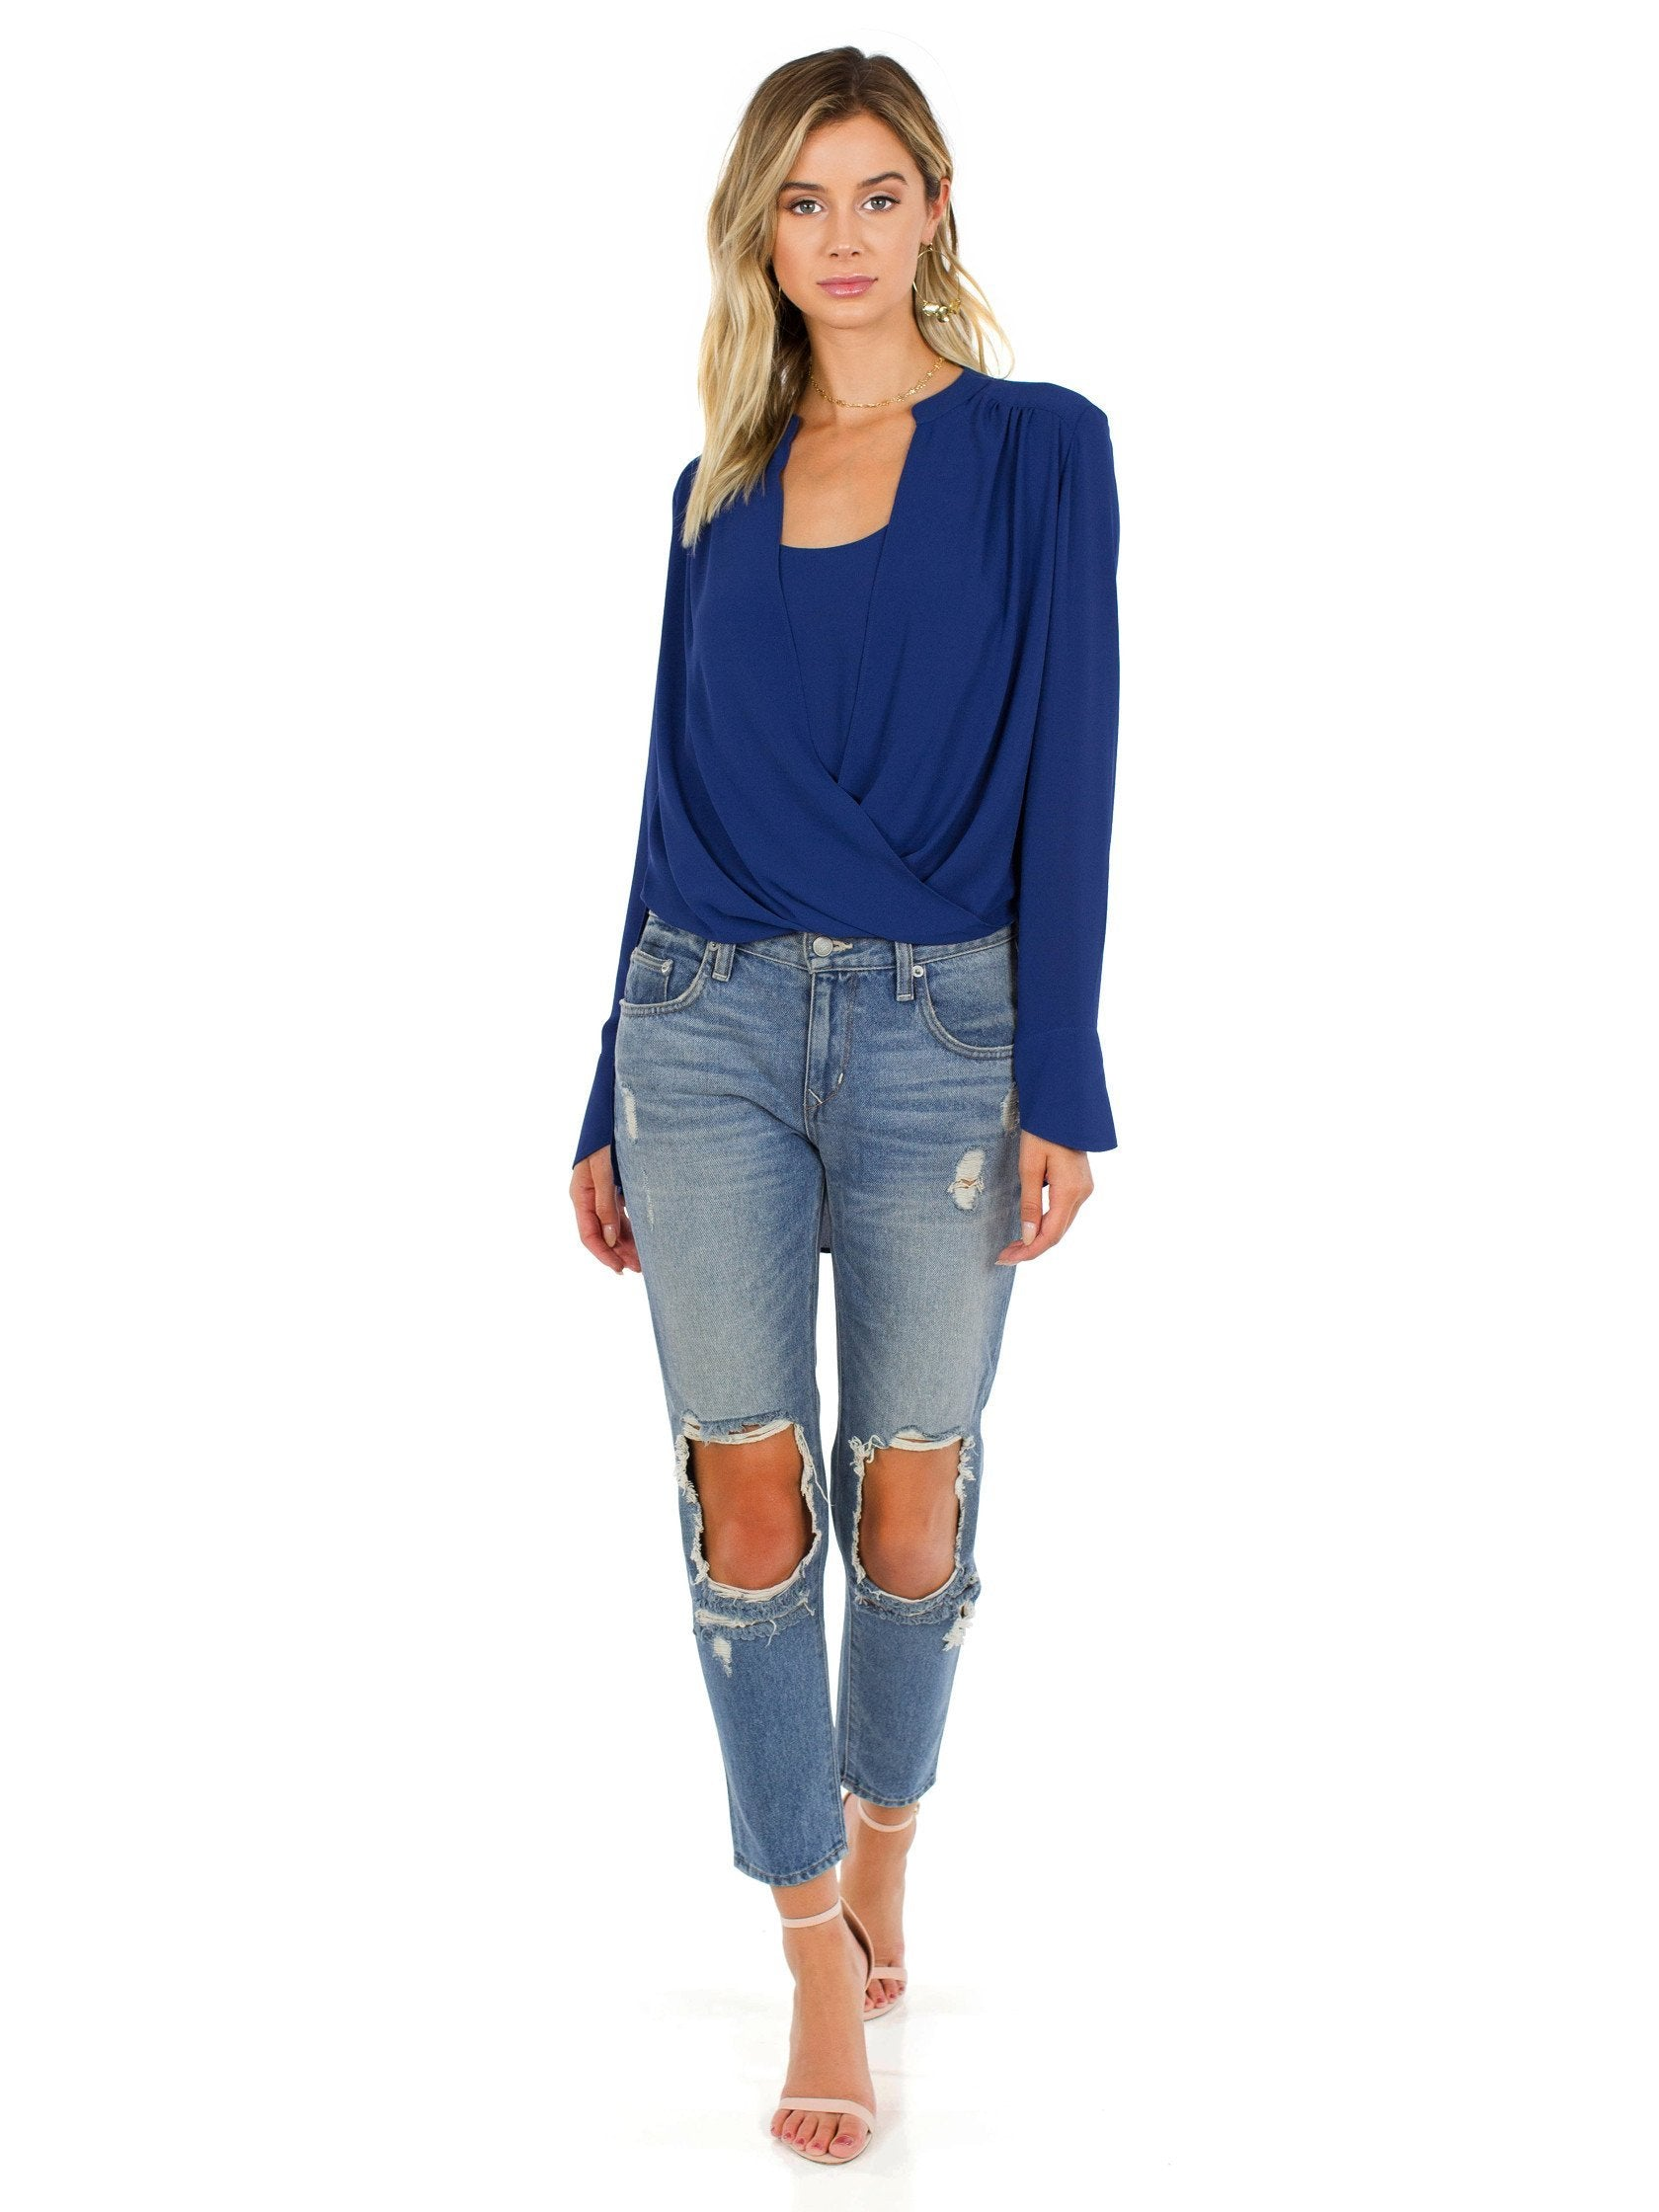 Girl wearing a top rental from BCBGMAXAZRIA called Jaklyn Draped-front Blouse